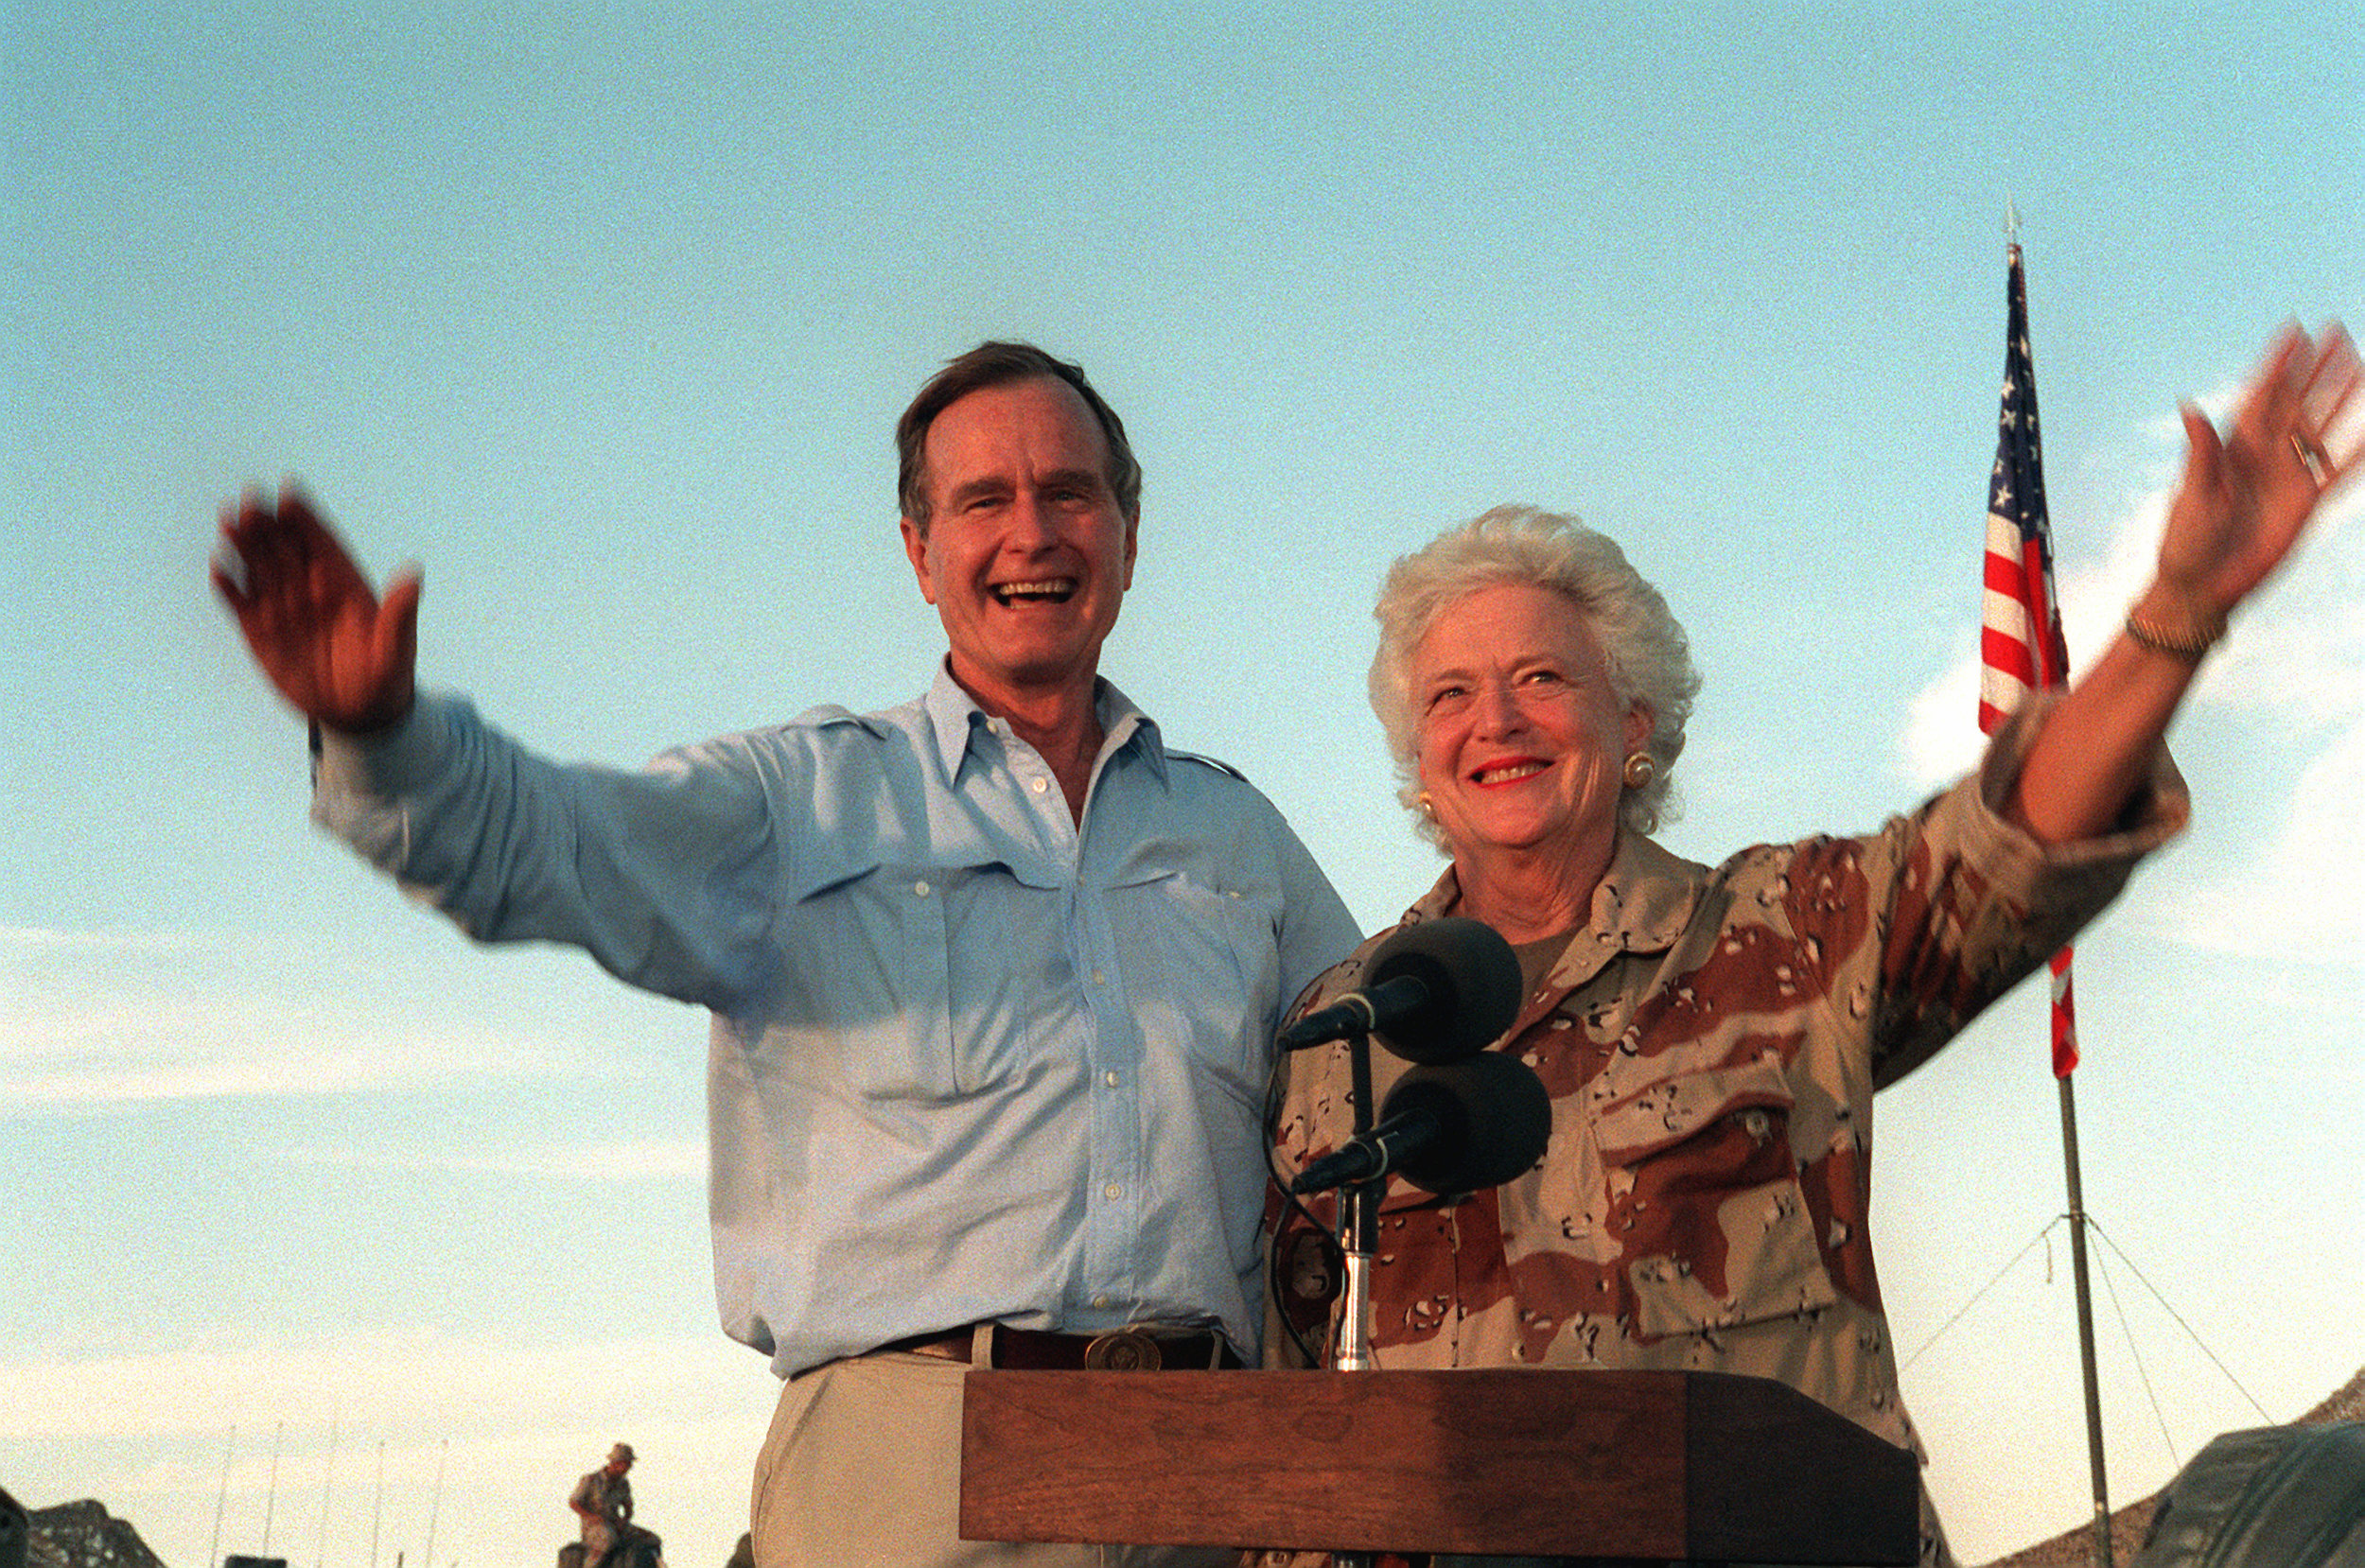 U.S. President George H.W. Bush and first lady Barbara Bush wave as they stand in the back of a vehicle during a visit to a desert encampment in Saudi Arabia, Nov. 22, 1990. The president and his wife are paying Thanksgiving Day visits to U.S. troops who are in Saudi Arabia for Operation Desert Shield. (U.S. Navy photo by CW02 Ed Bailey)